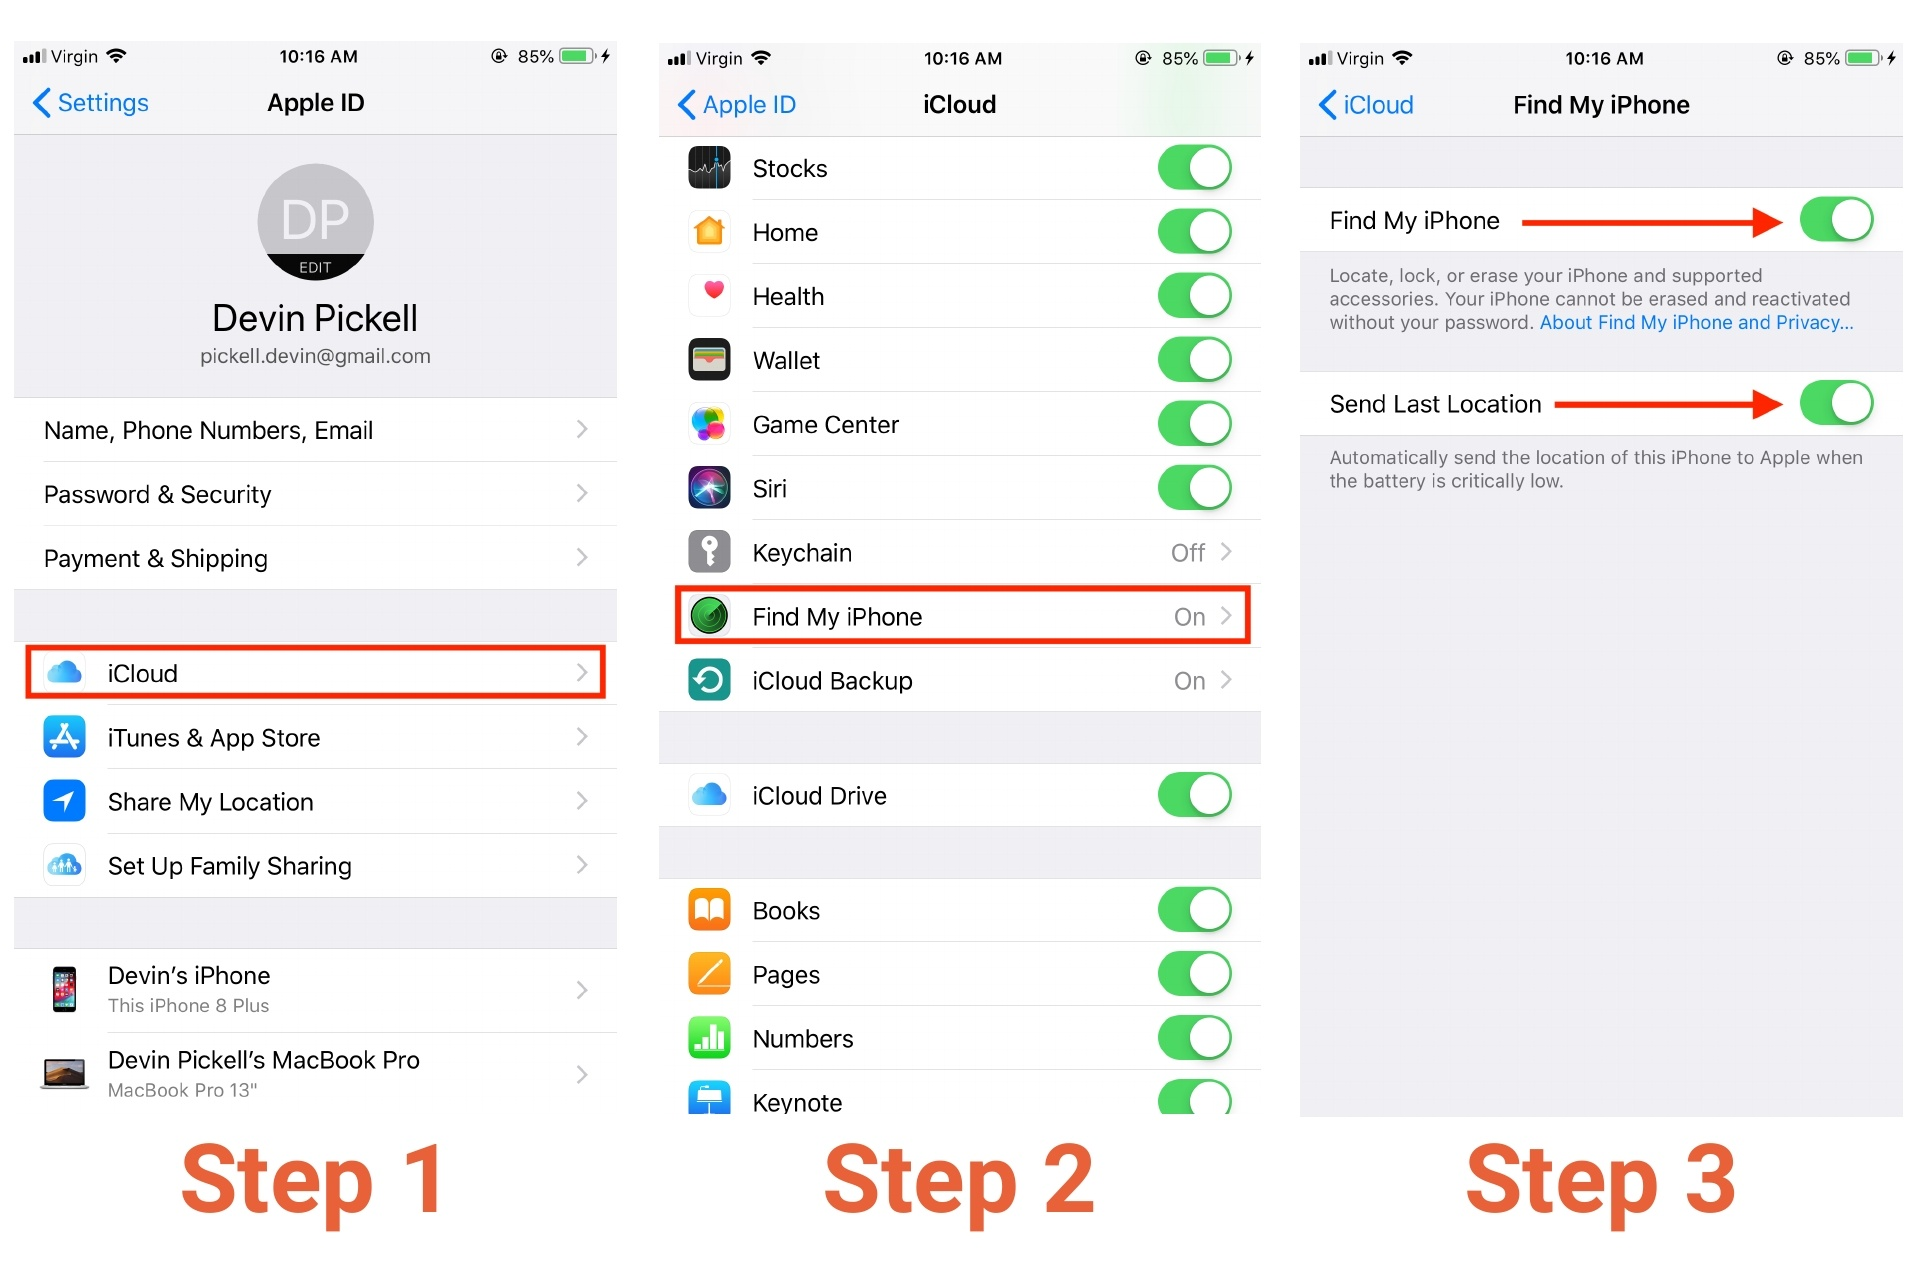 How to Turn on Find My iPhone in 3 Easy Steps